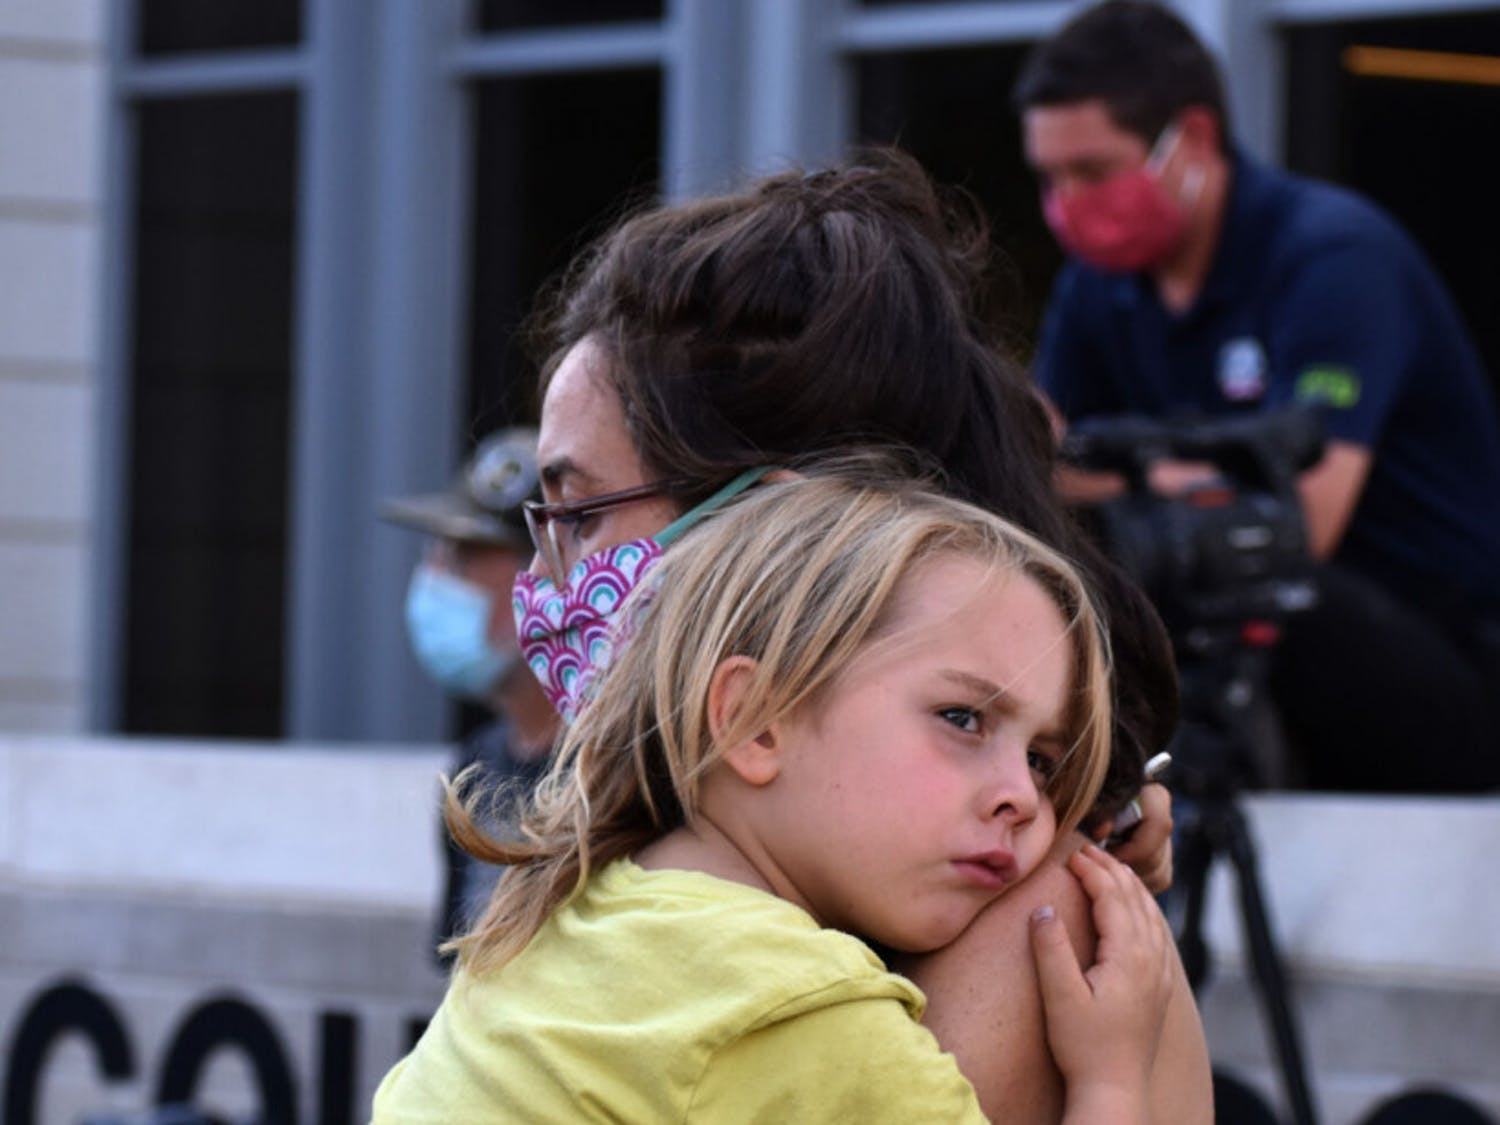 Meg Sullivan, 32, a Gainesville resident, is seen holding her six-year-old son, whom she did not want to be named, at the protest for Breonna Taylor at the Alachua County Court House on Saturday, Sept. 26, 2020. (Asta Hemenway/Alligator Staff)